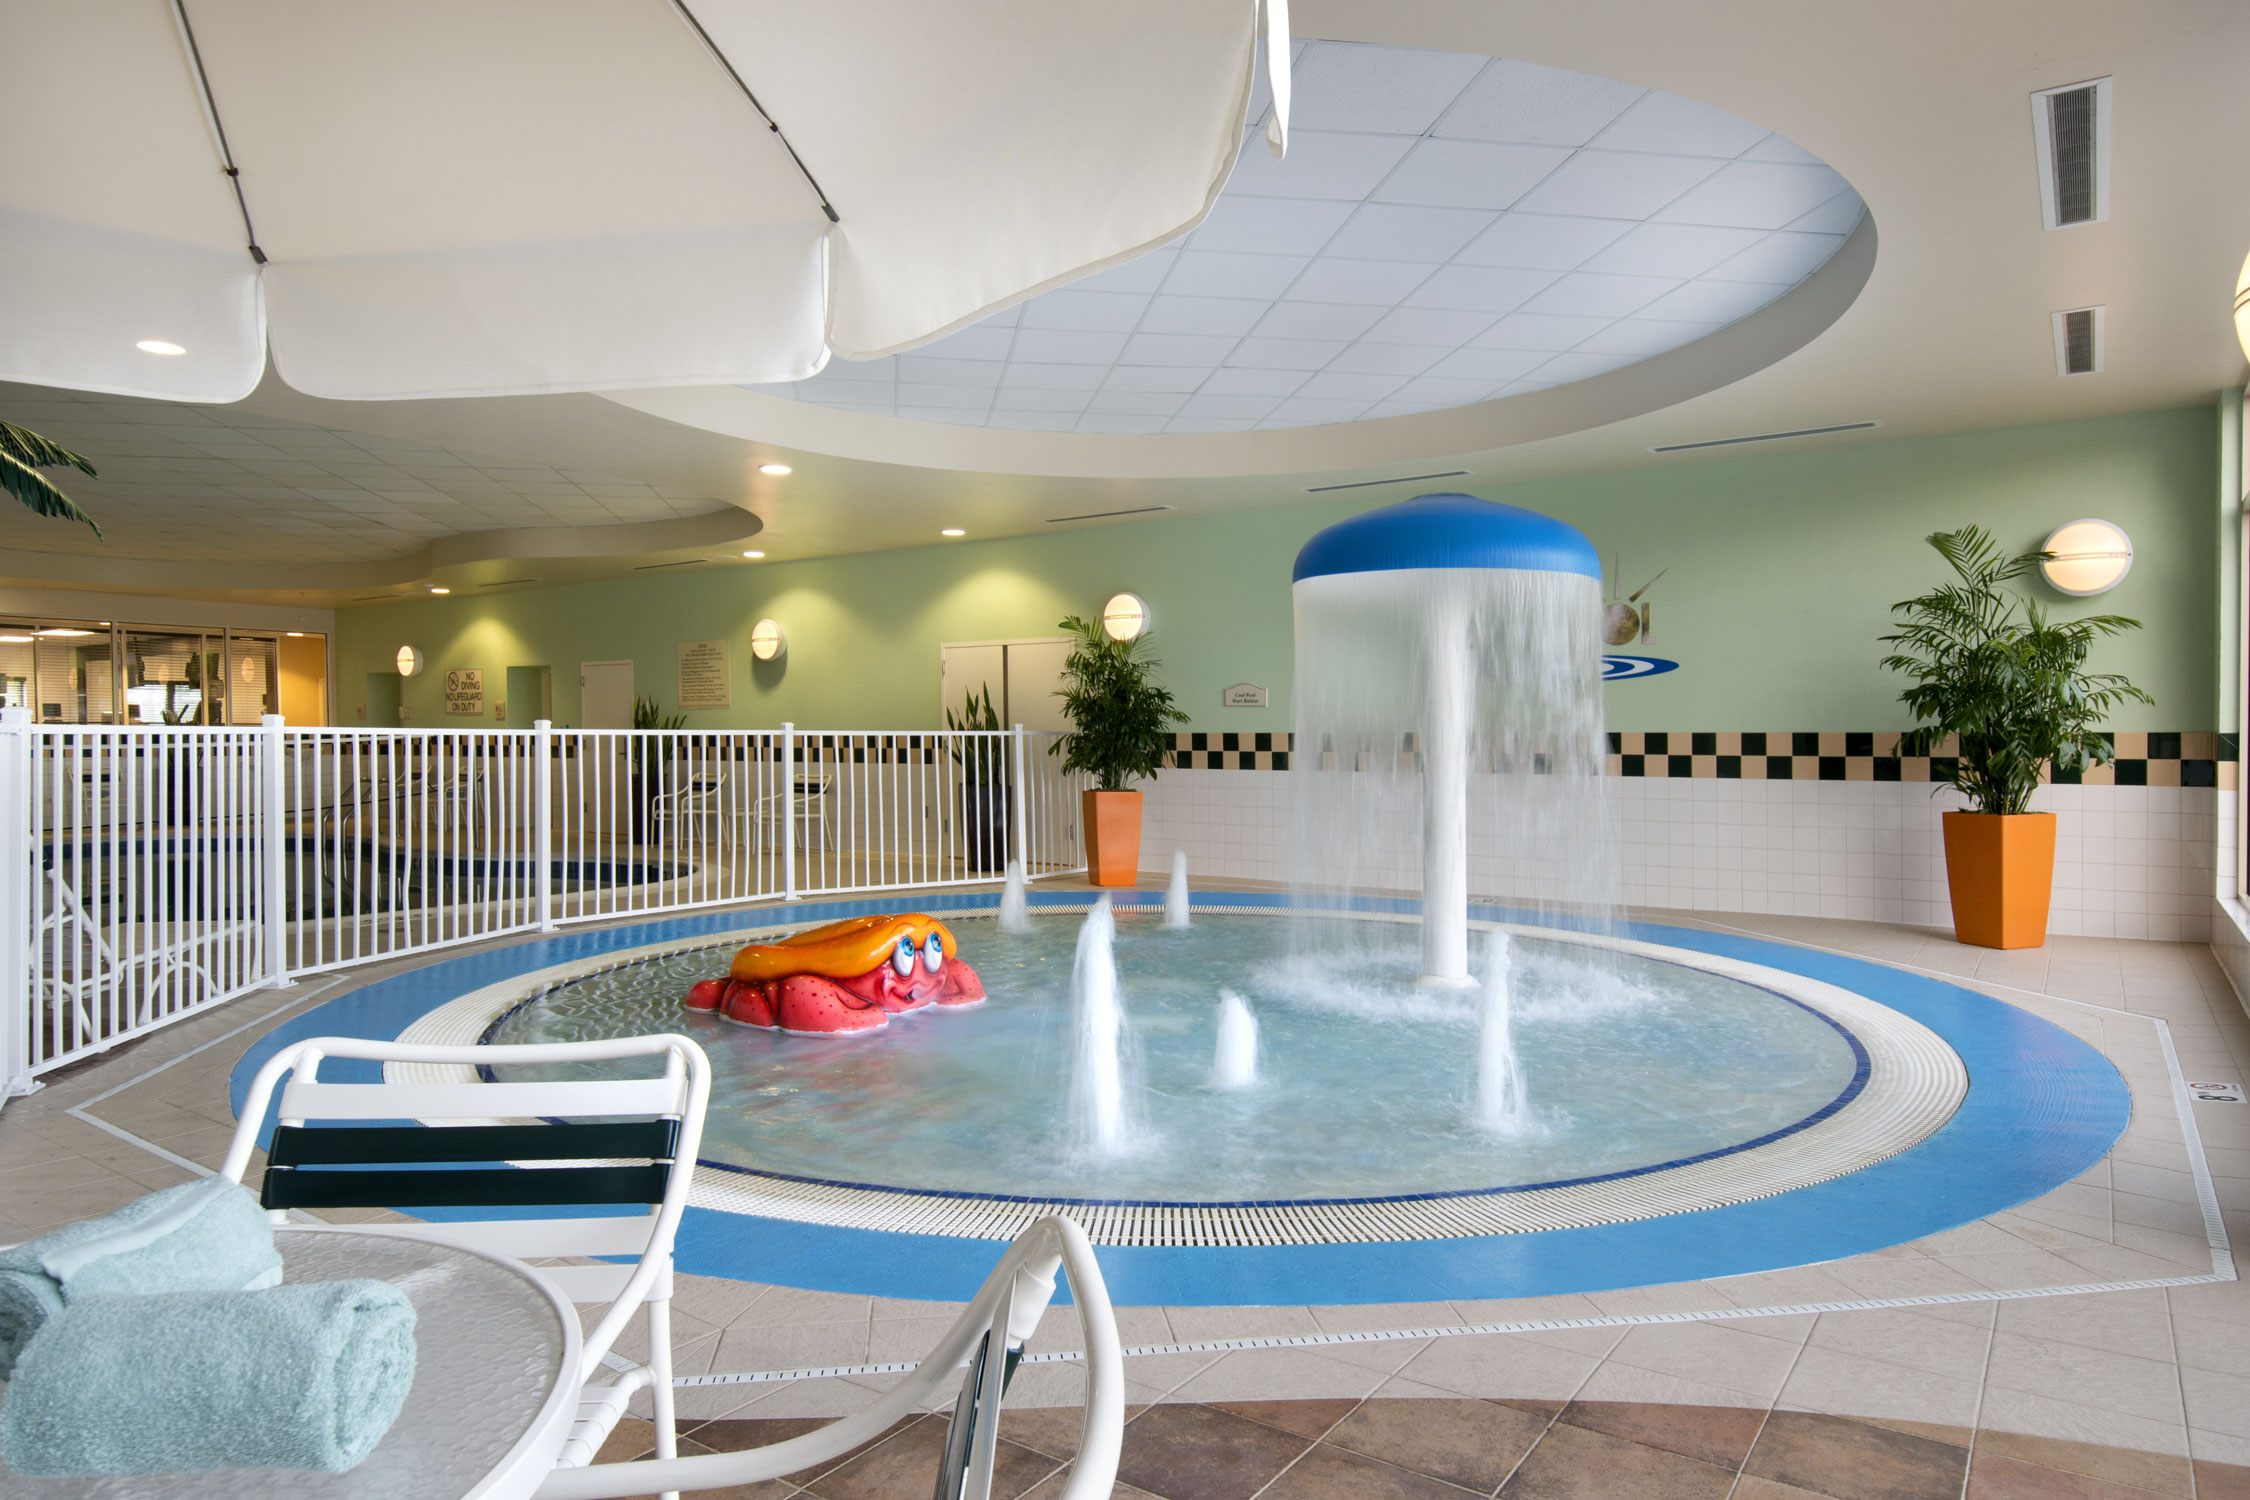 https://www.hotelsbyday.com/_data/default-hotel_image/1/6709/pool.jpg